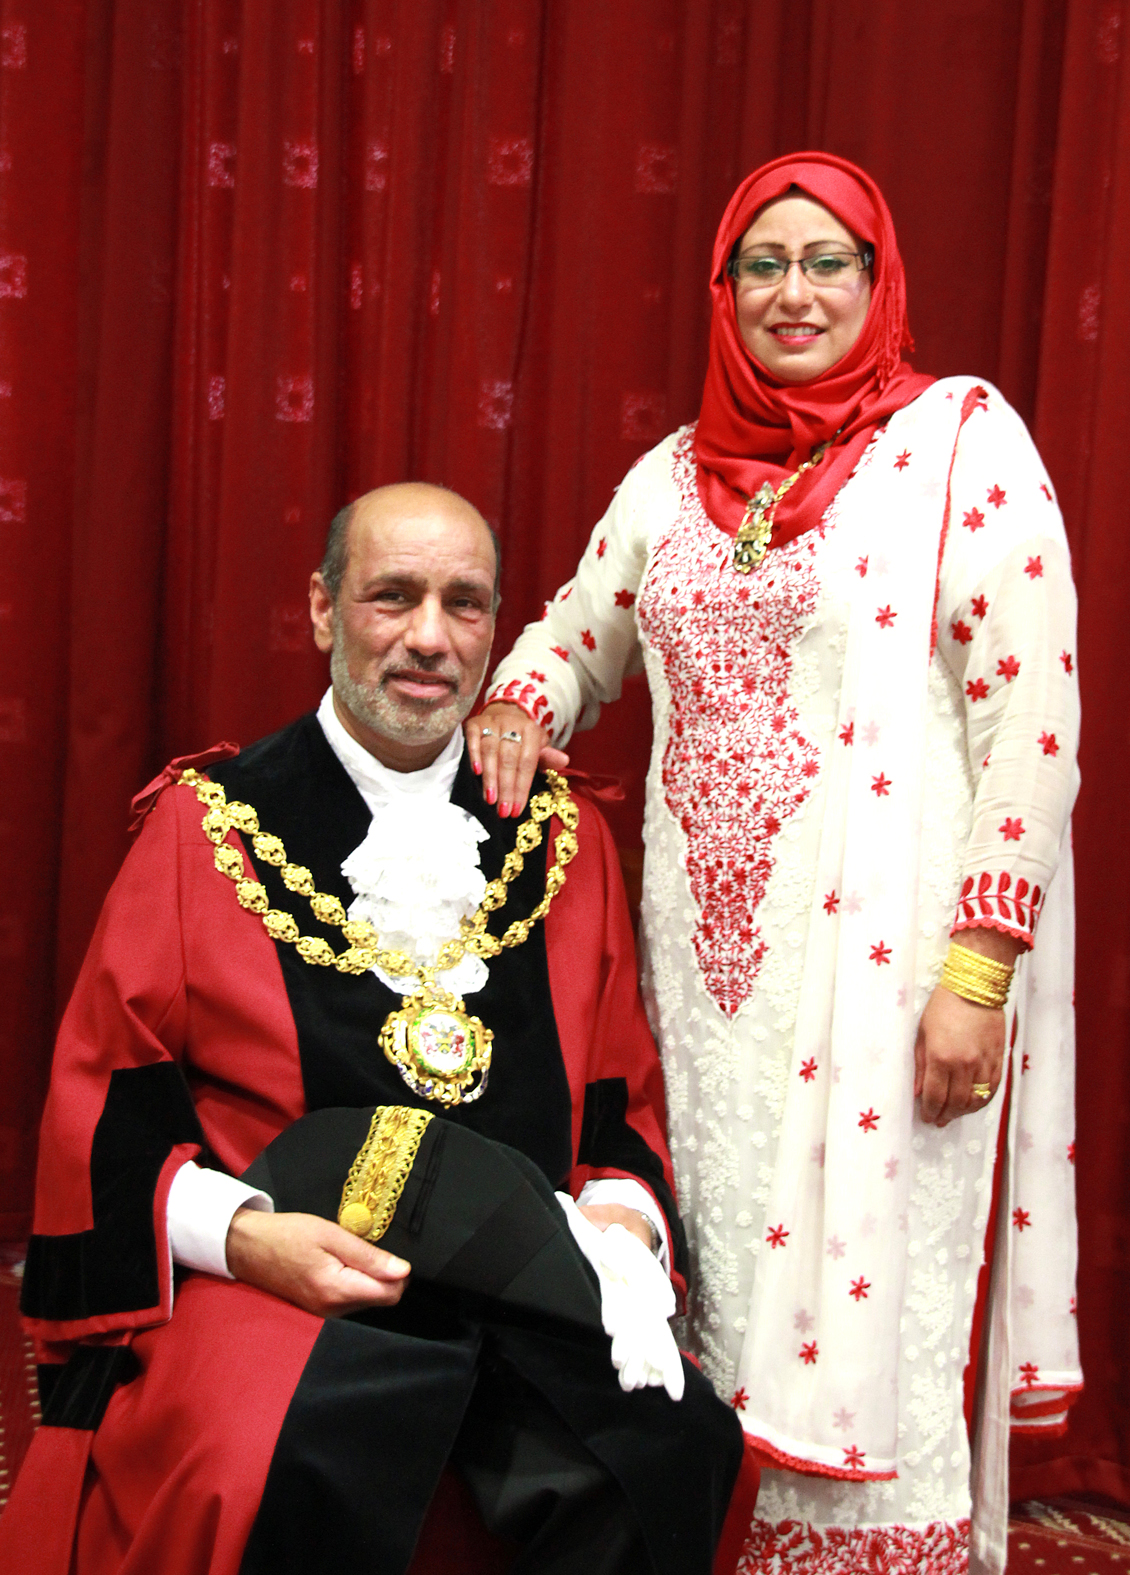 Councillor Fida Hussain, Mayor of Oldham and his wife Tanvir. Stoptober case study